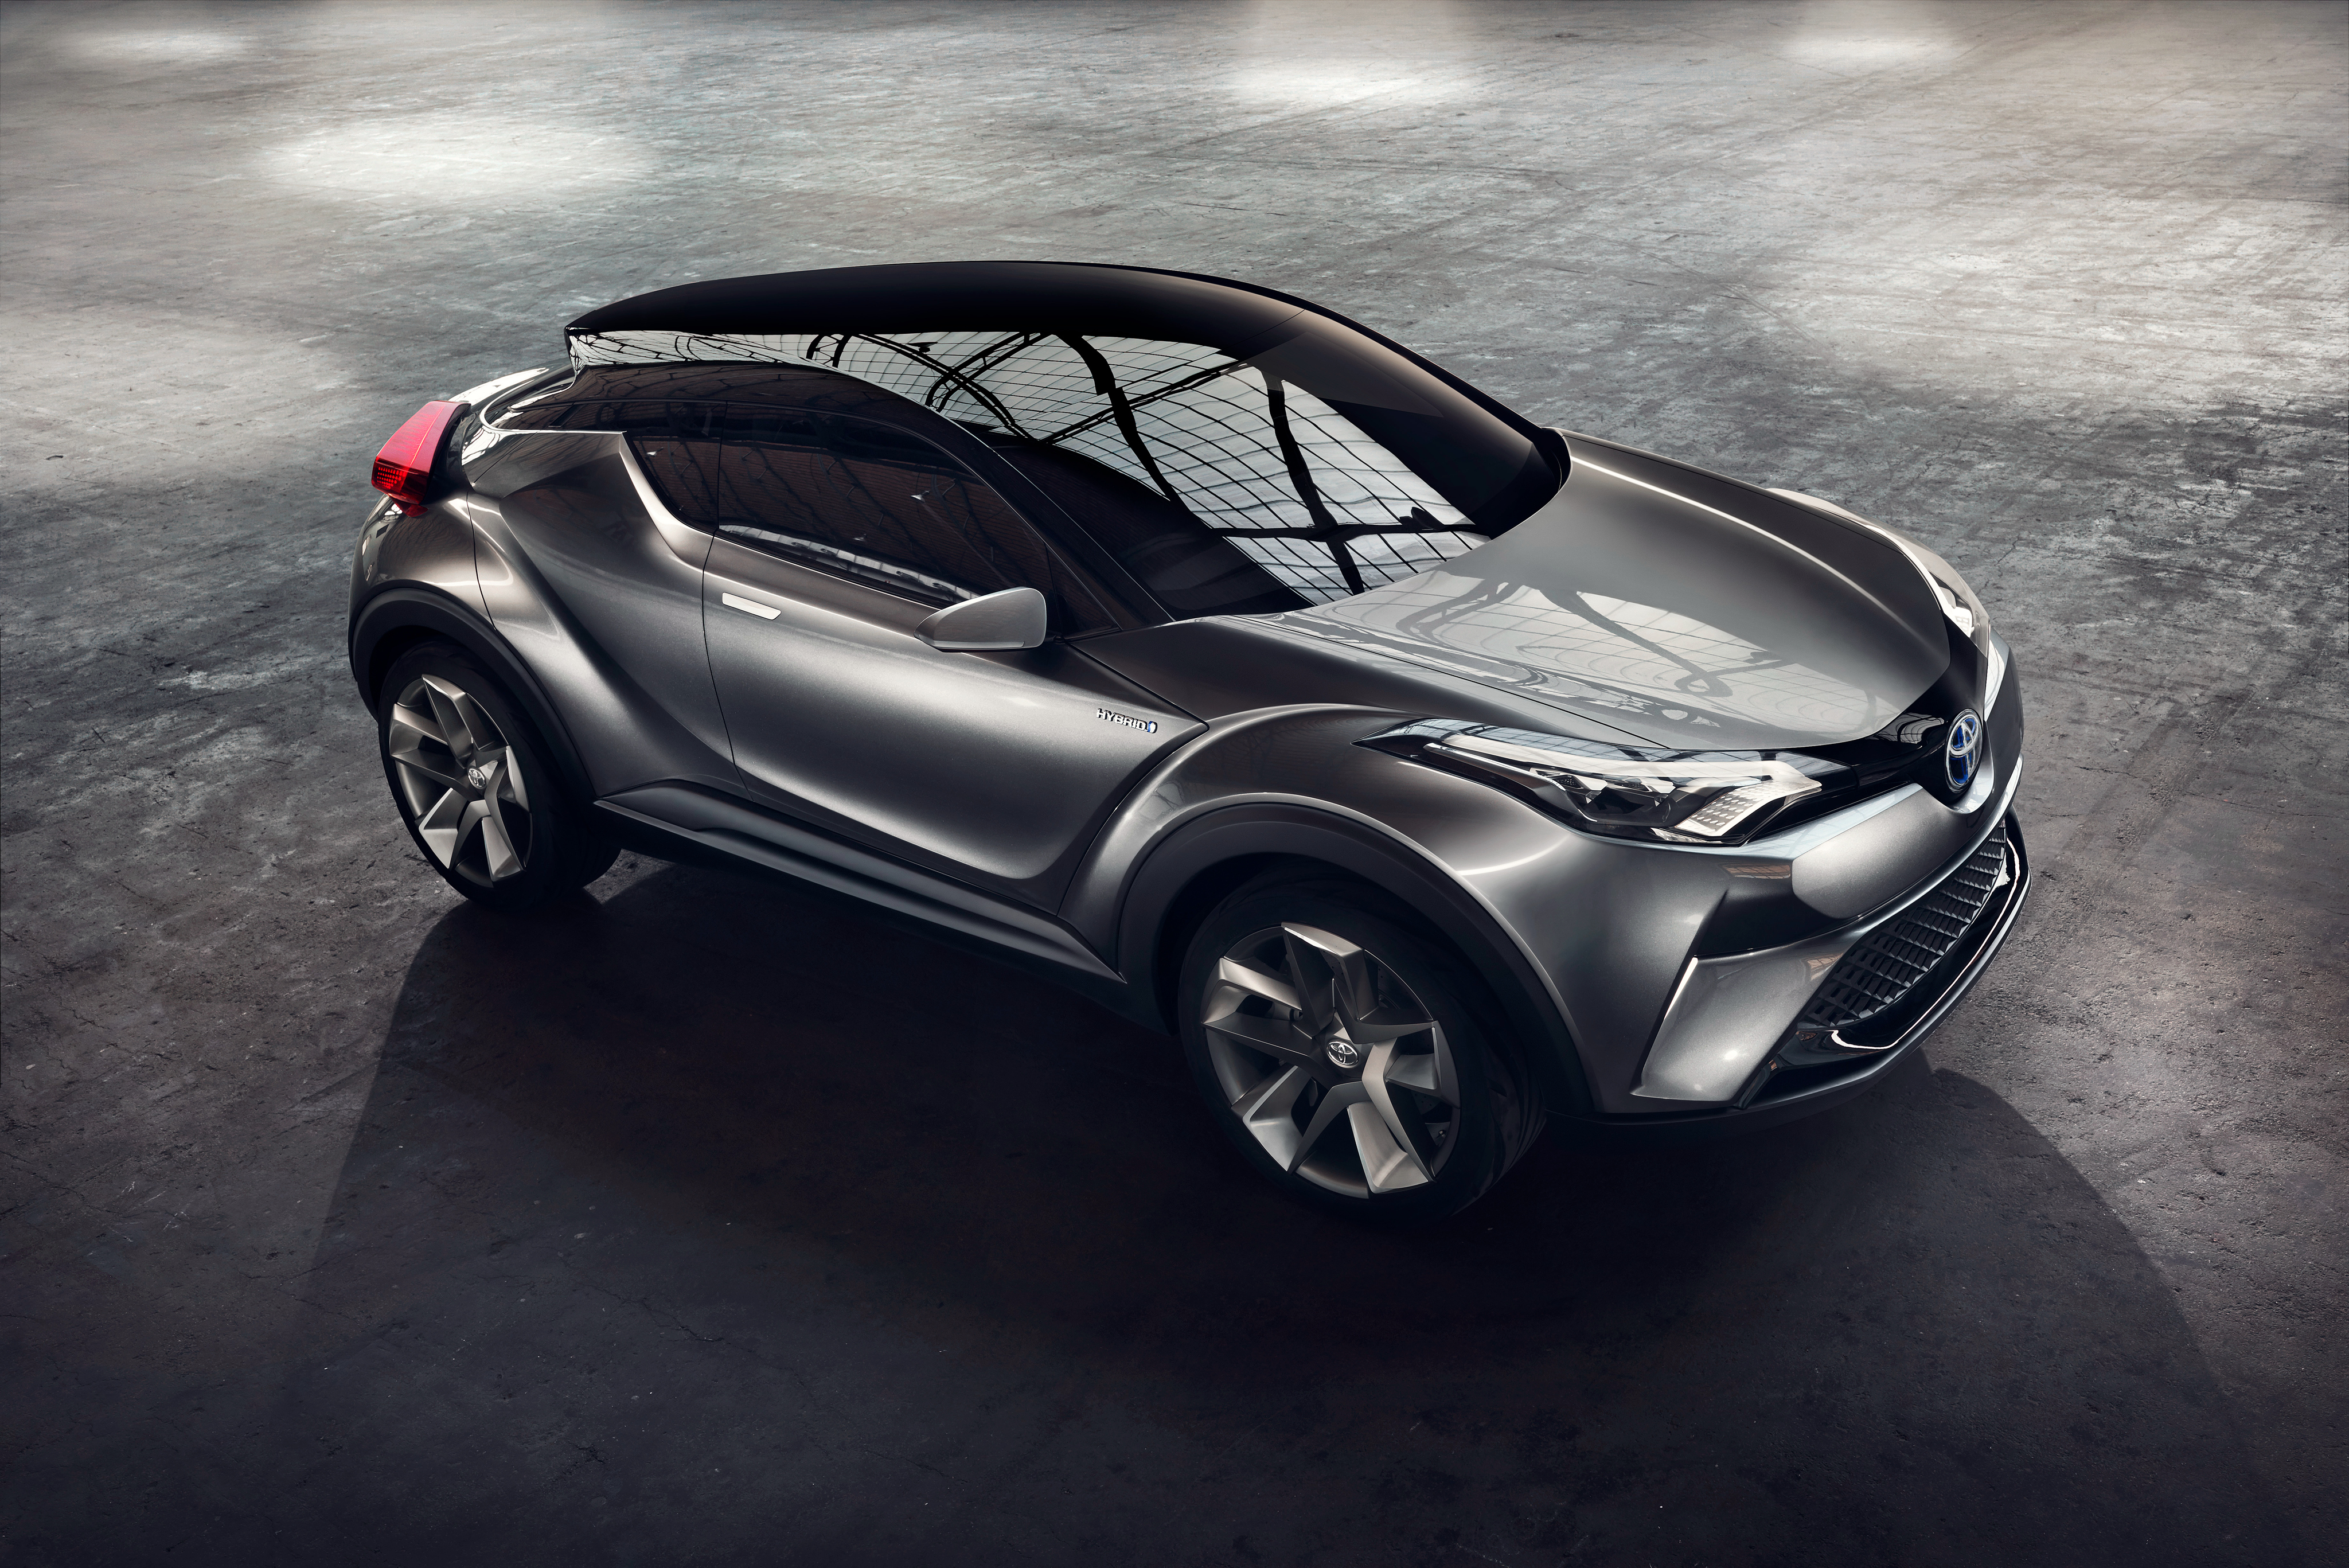 56231 download wallpaper Toyota, Cars, Grey, Side View, C-Hr screensavers and pictures for free